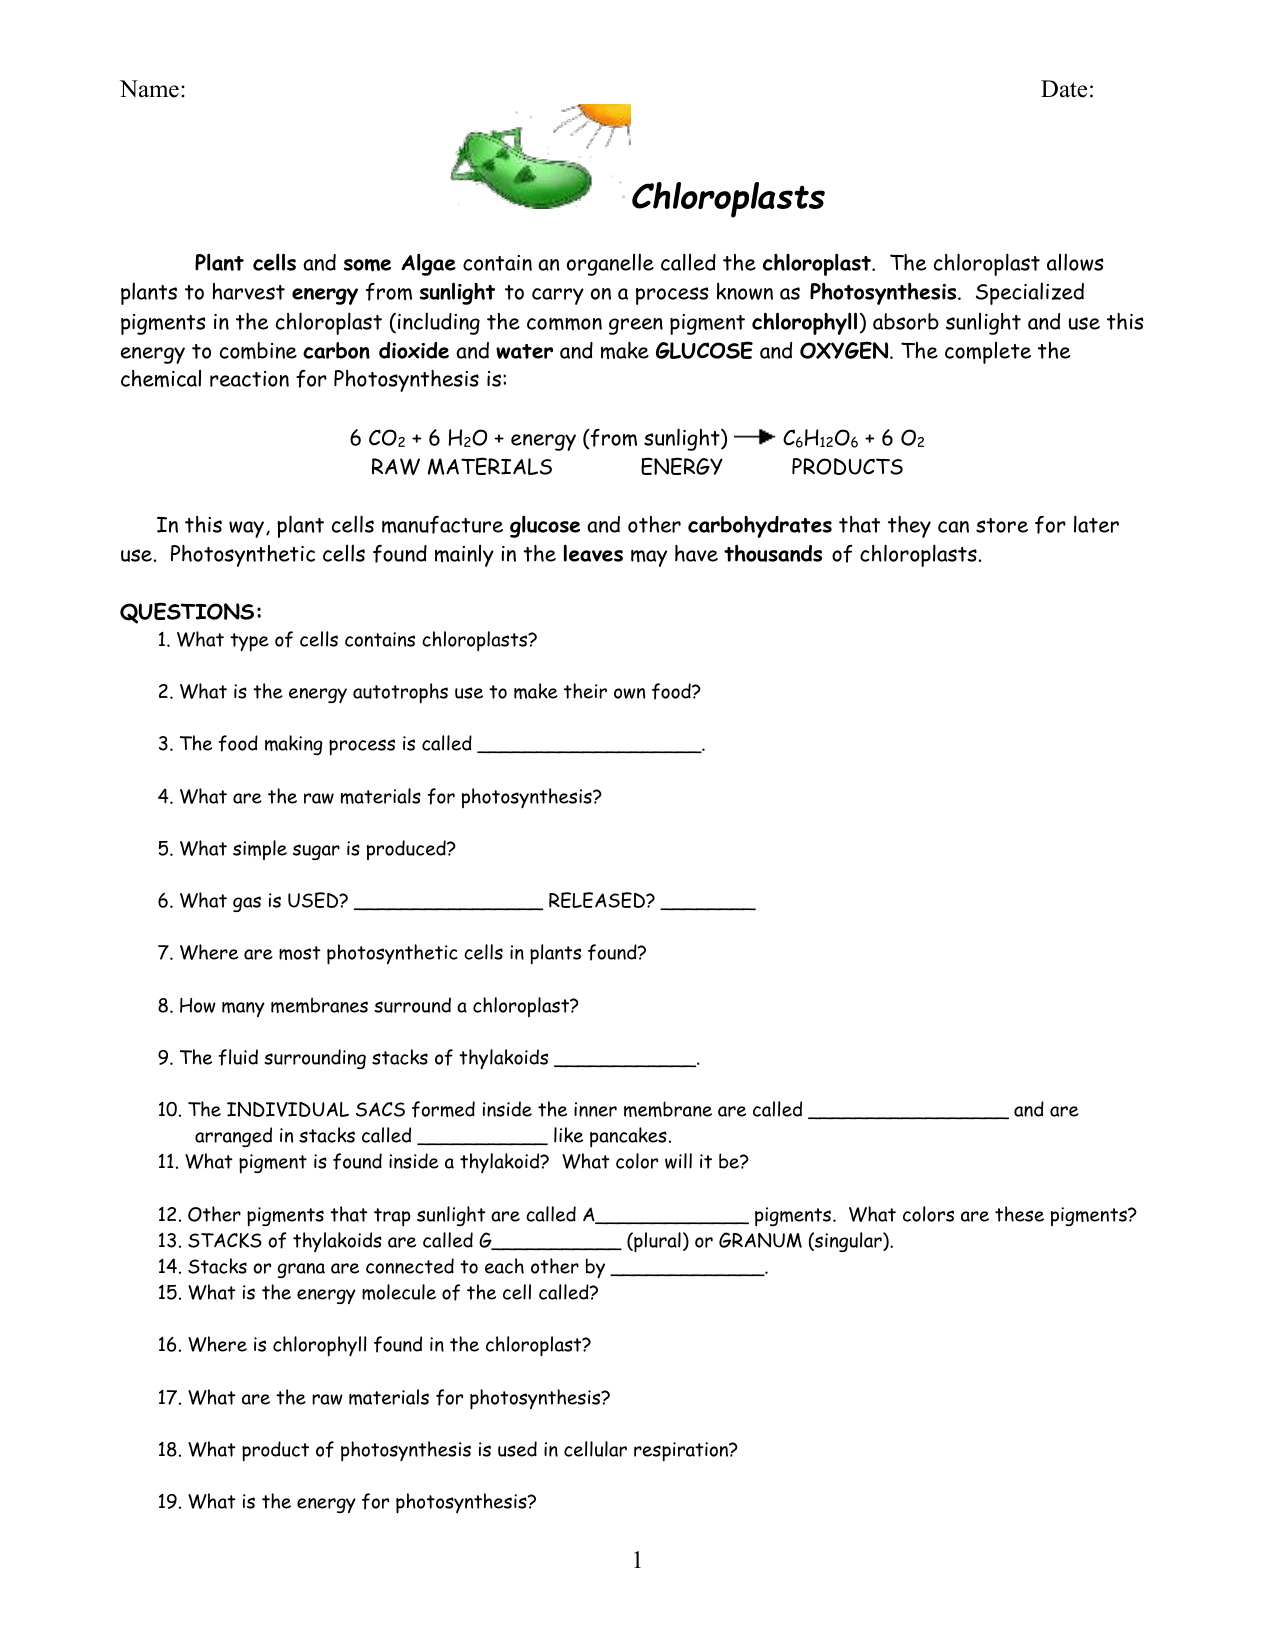 Photosynthesis And Chloroplast Diagram Worksheet Answers